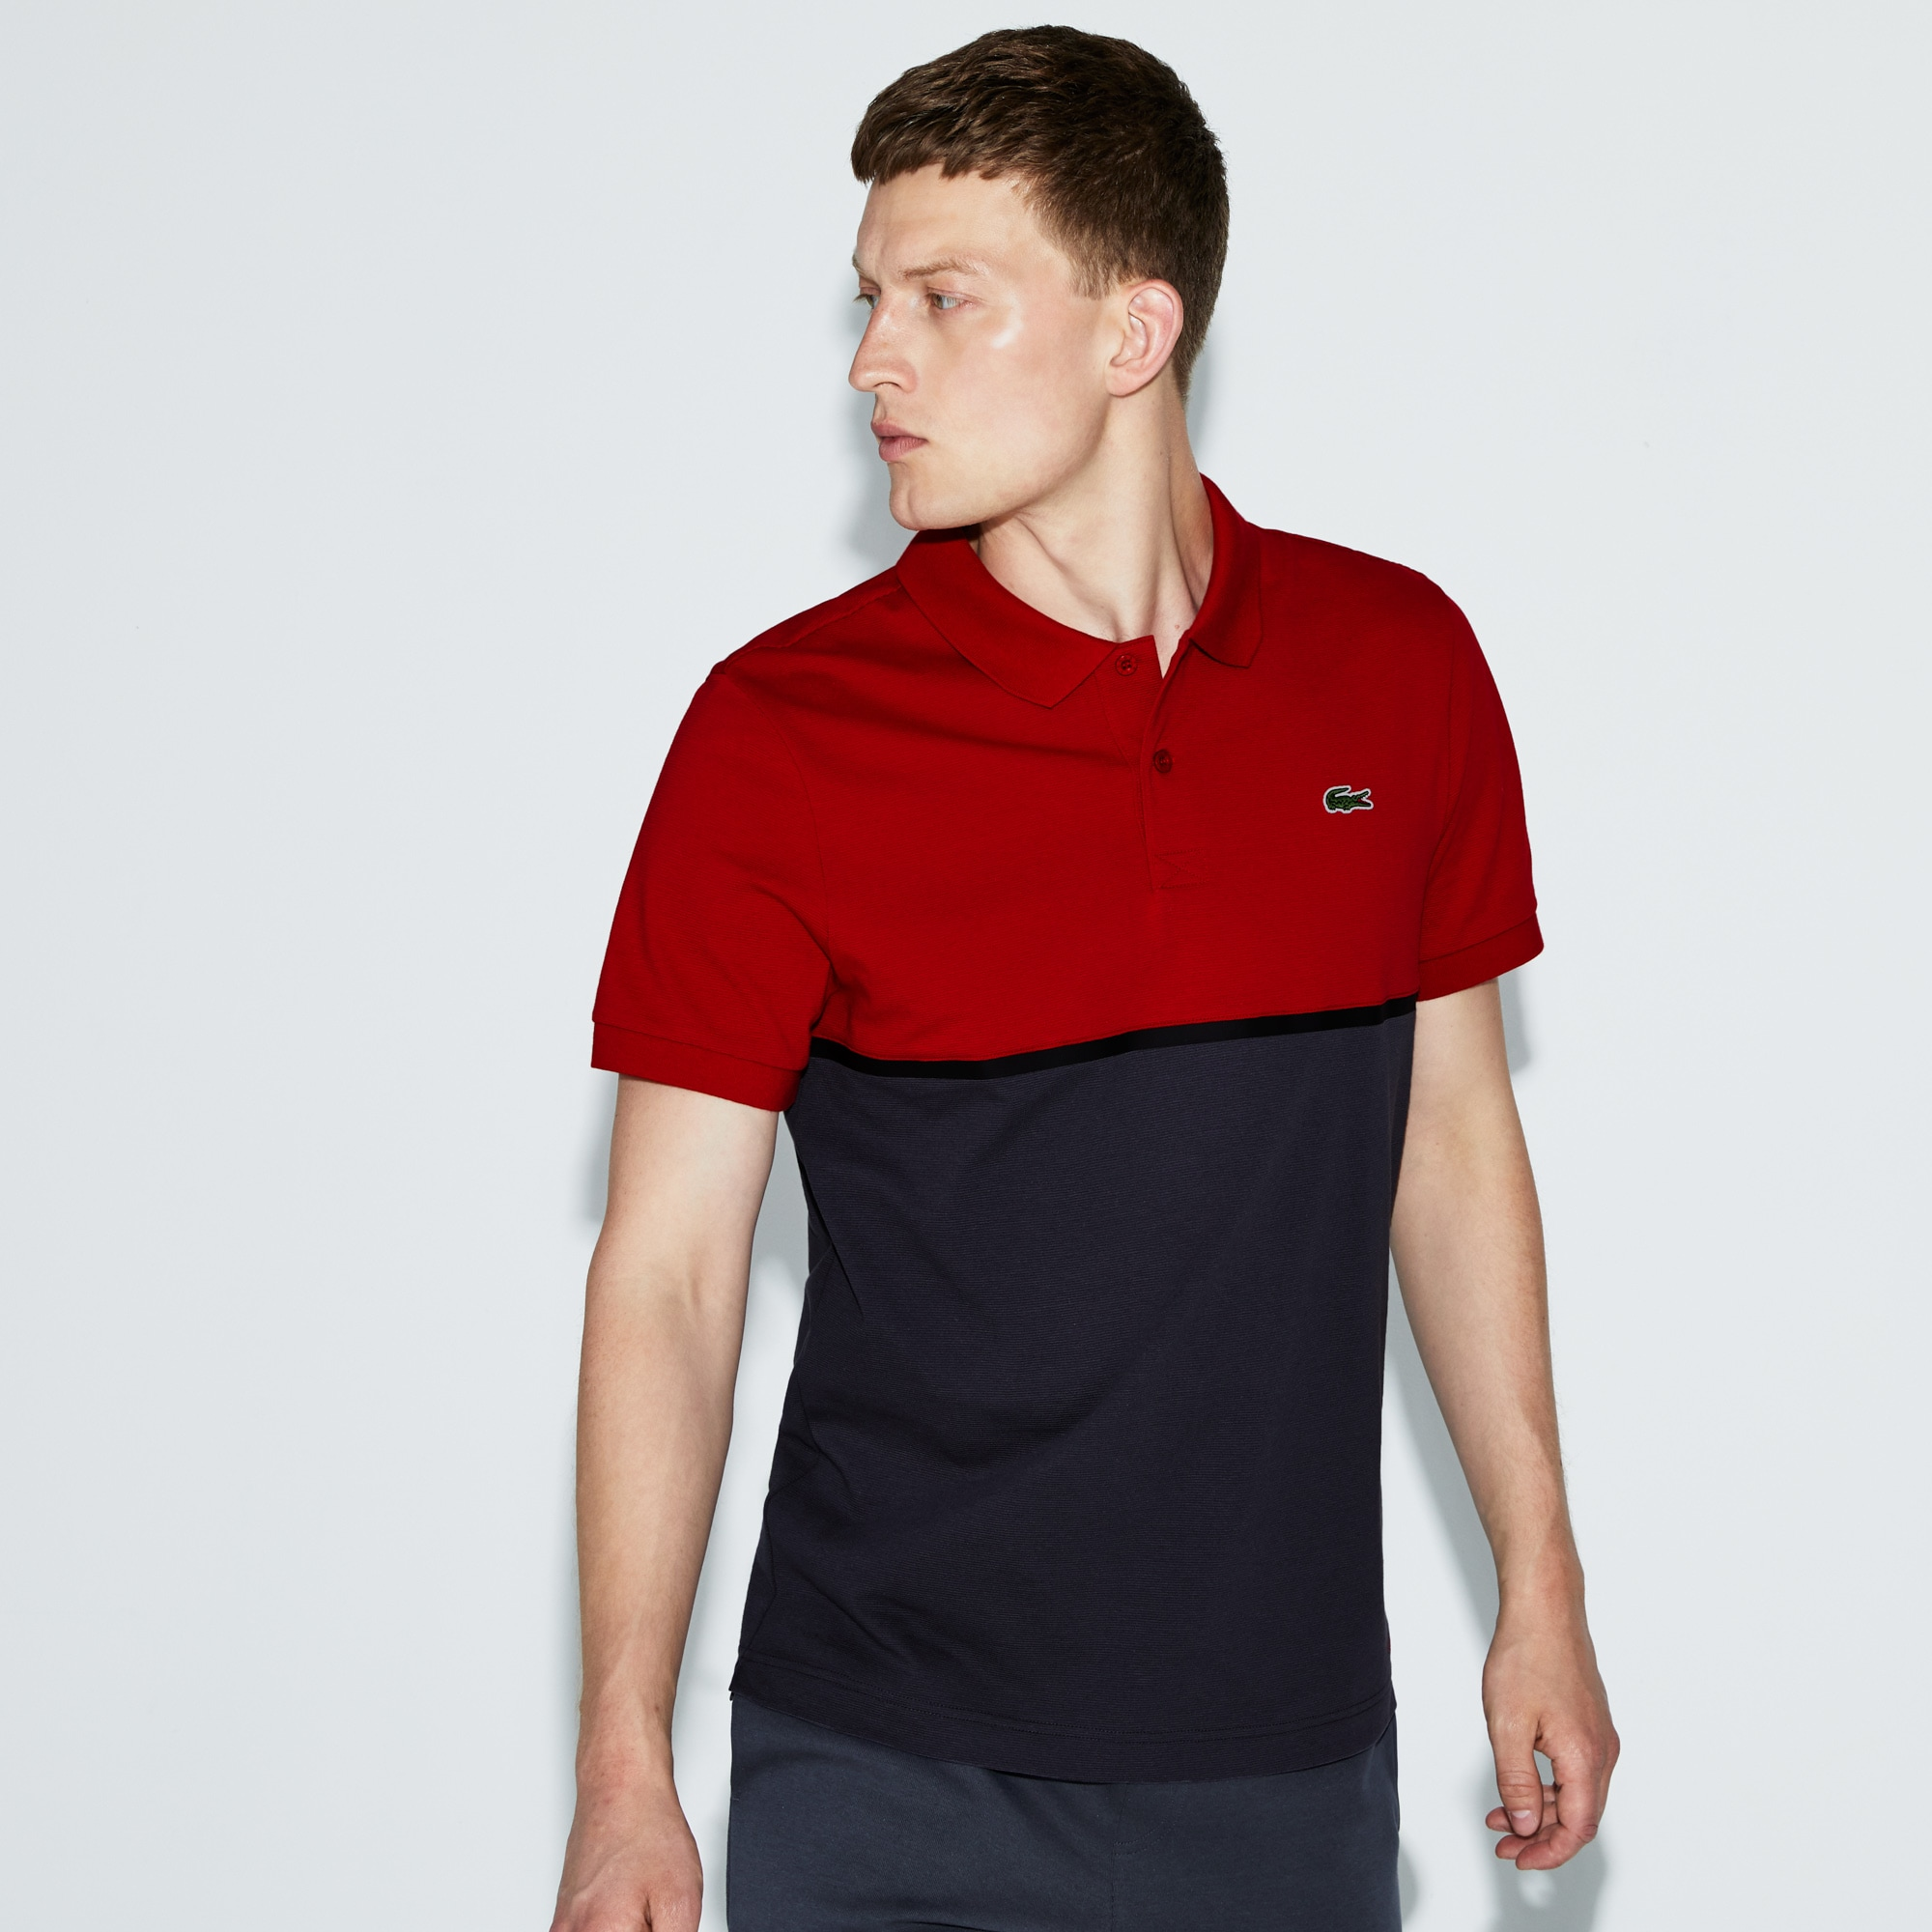 Men's SPORT Colorblock Ultra-Light Cotton Tennis Polo